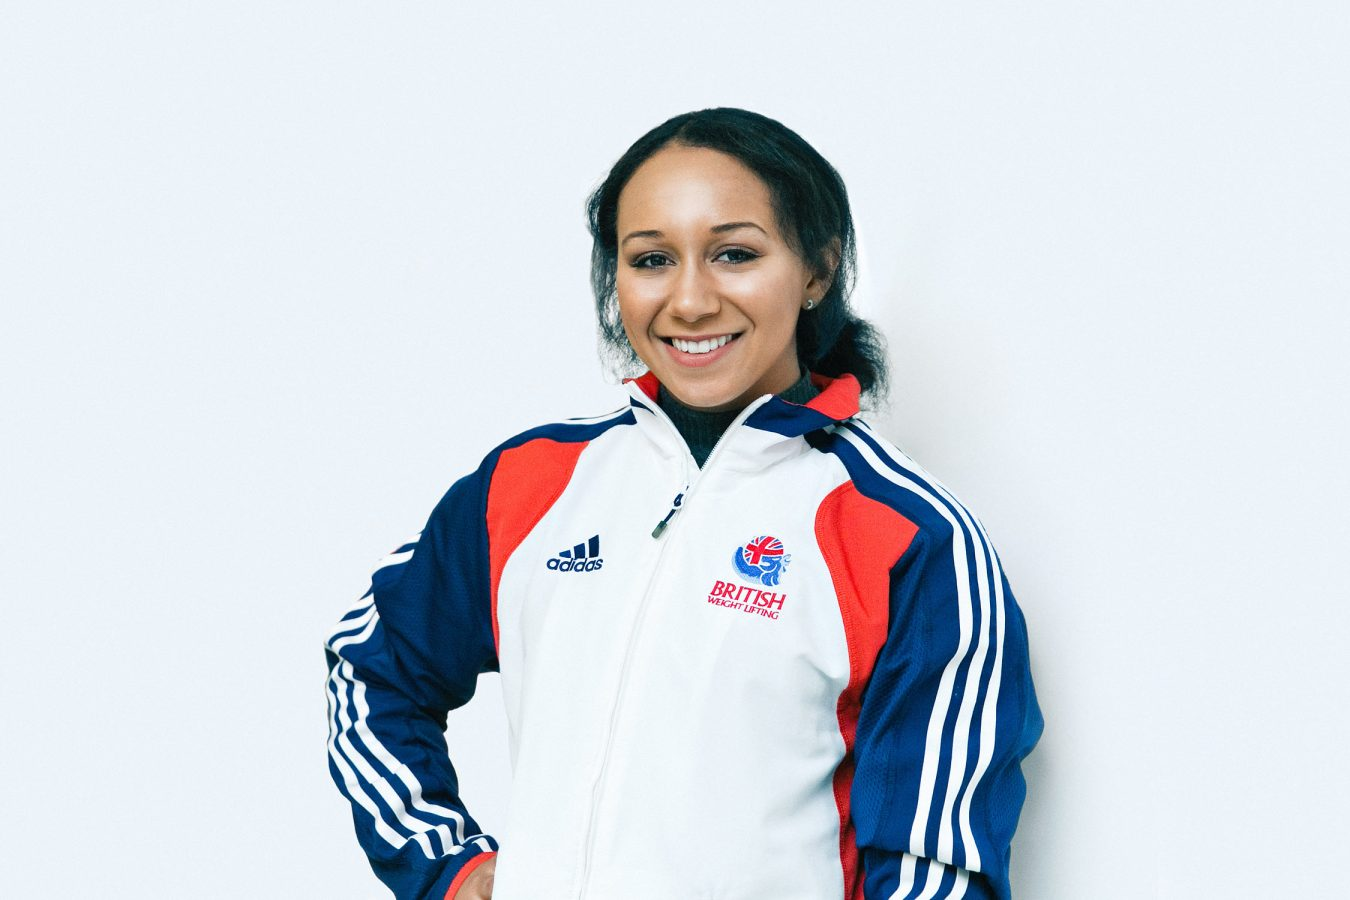 zoe-smith-team-GB-studio-photography-london